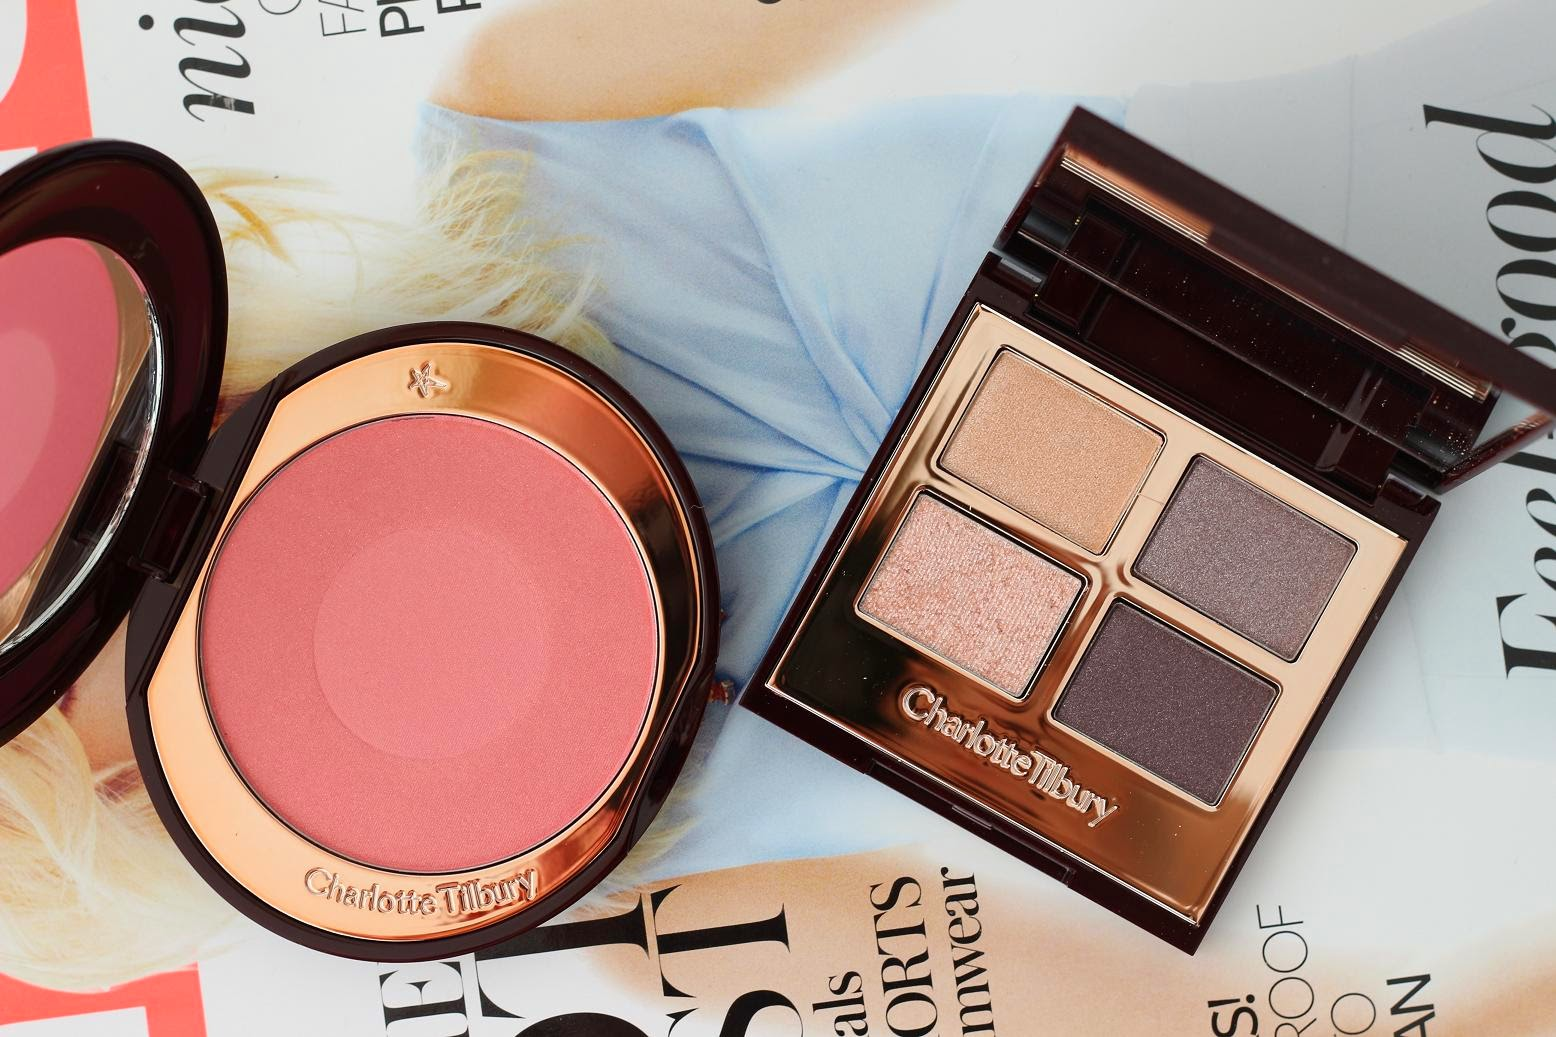 Charlotte Tilbury Luxury Palette - Cheek to Chic